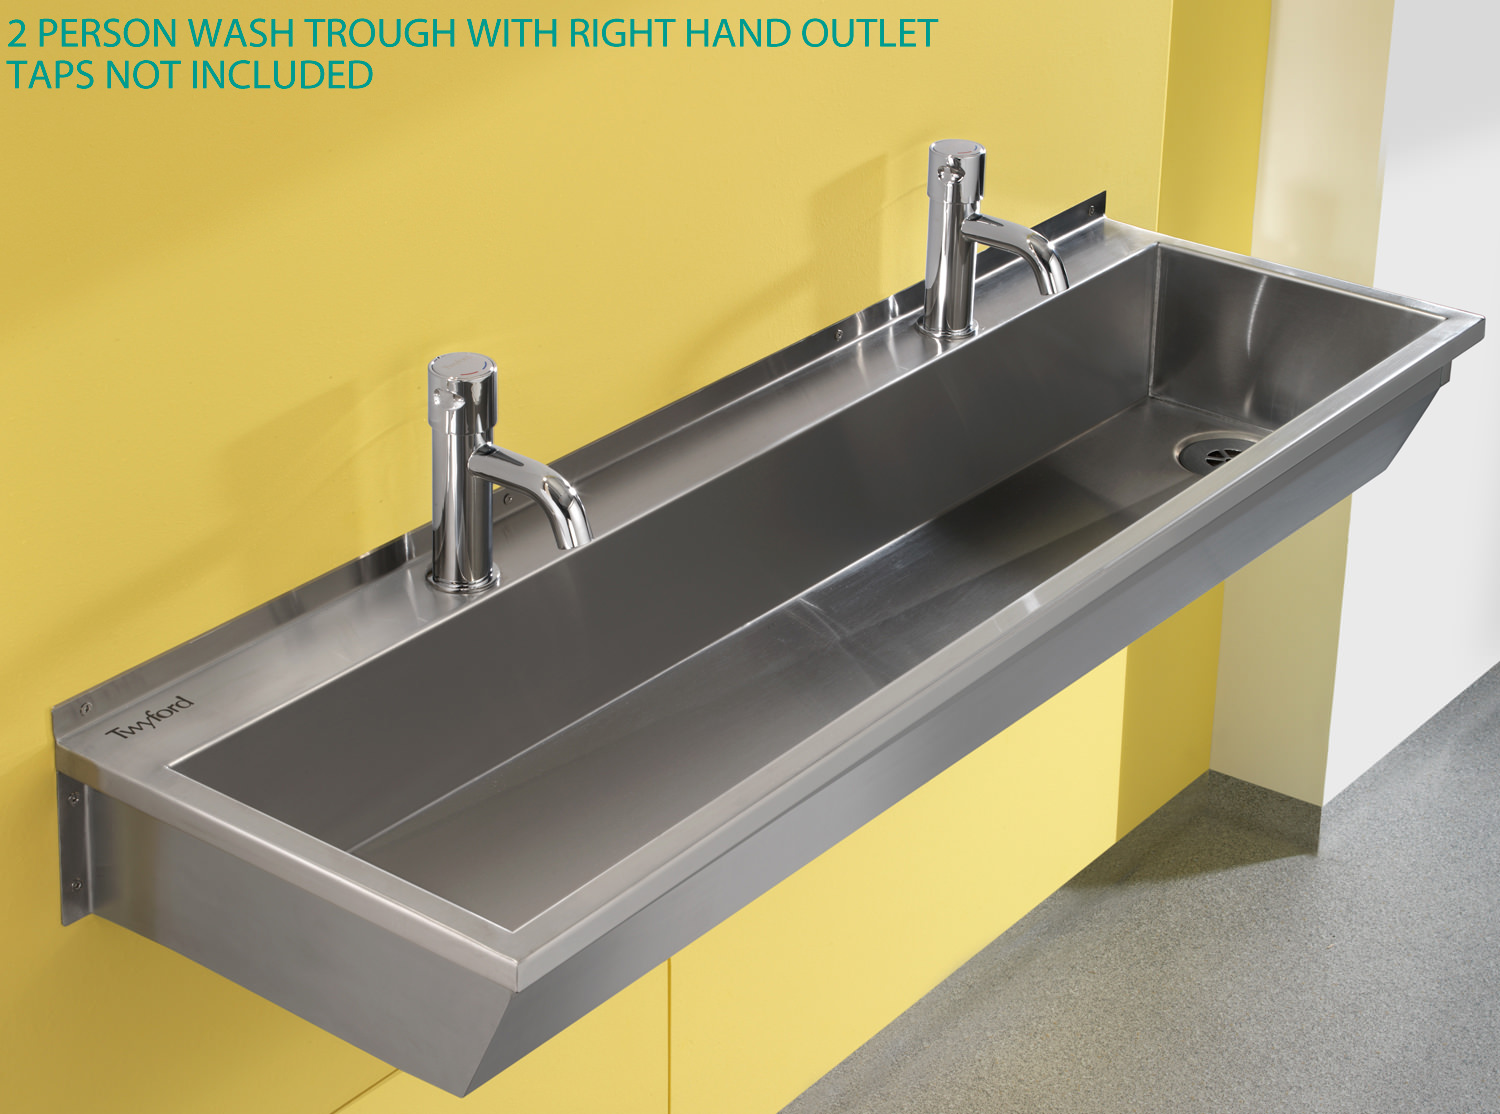 Metal Trough Sink : ... image of Twyford SS 1200 x 370mm 2 Person Stainless Steel Wash Trough